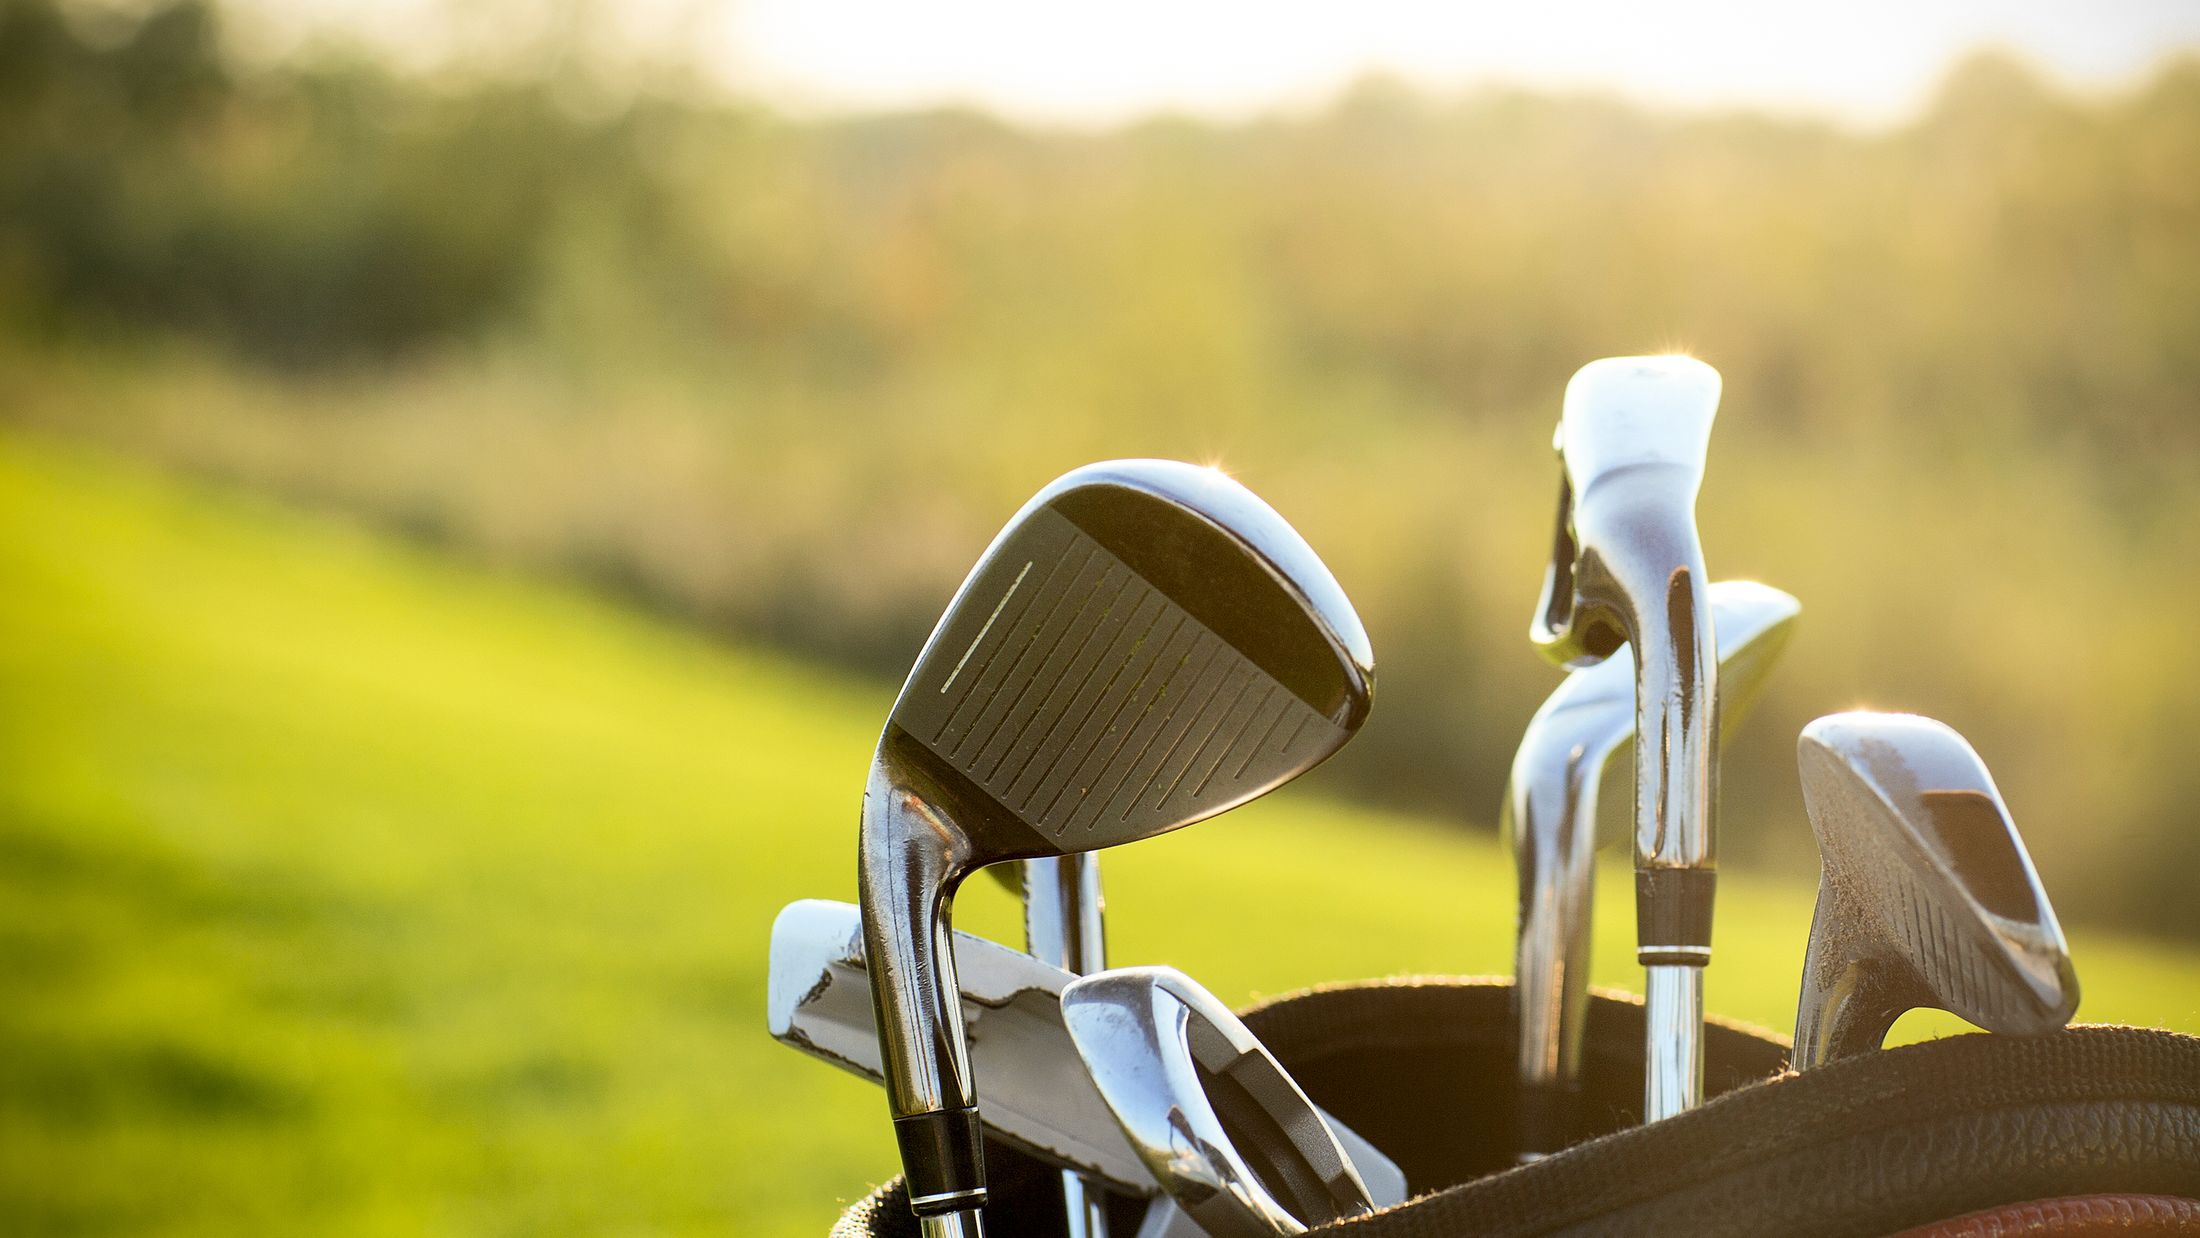 Golf clubs drivers over green field background. Summer sunset; Shutterstock ID 255601300; PO: Project Italy - Facilities images; Job: Project Italy - Facilities images; Client: H&J/Citalia